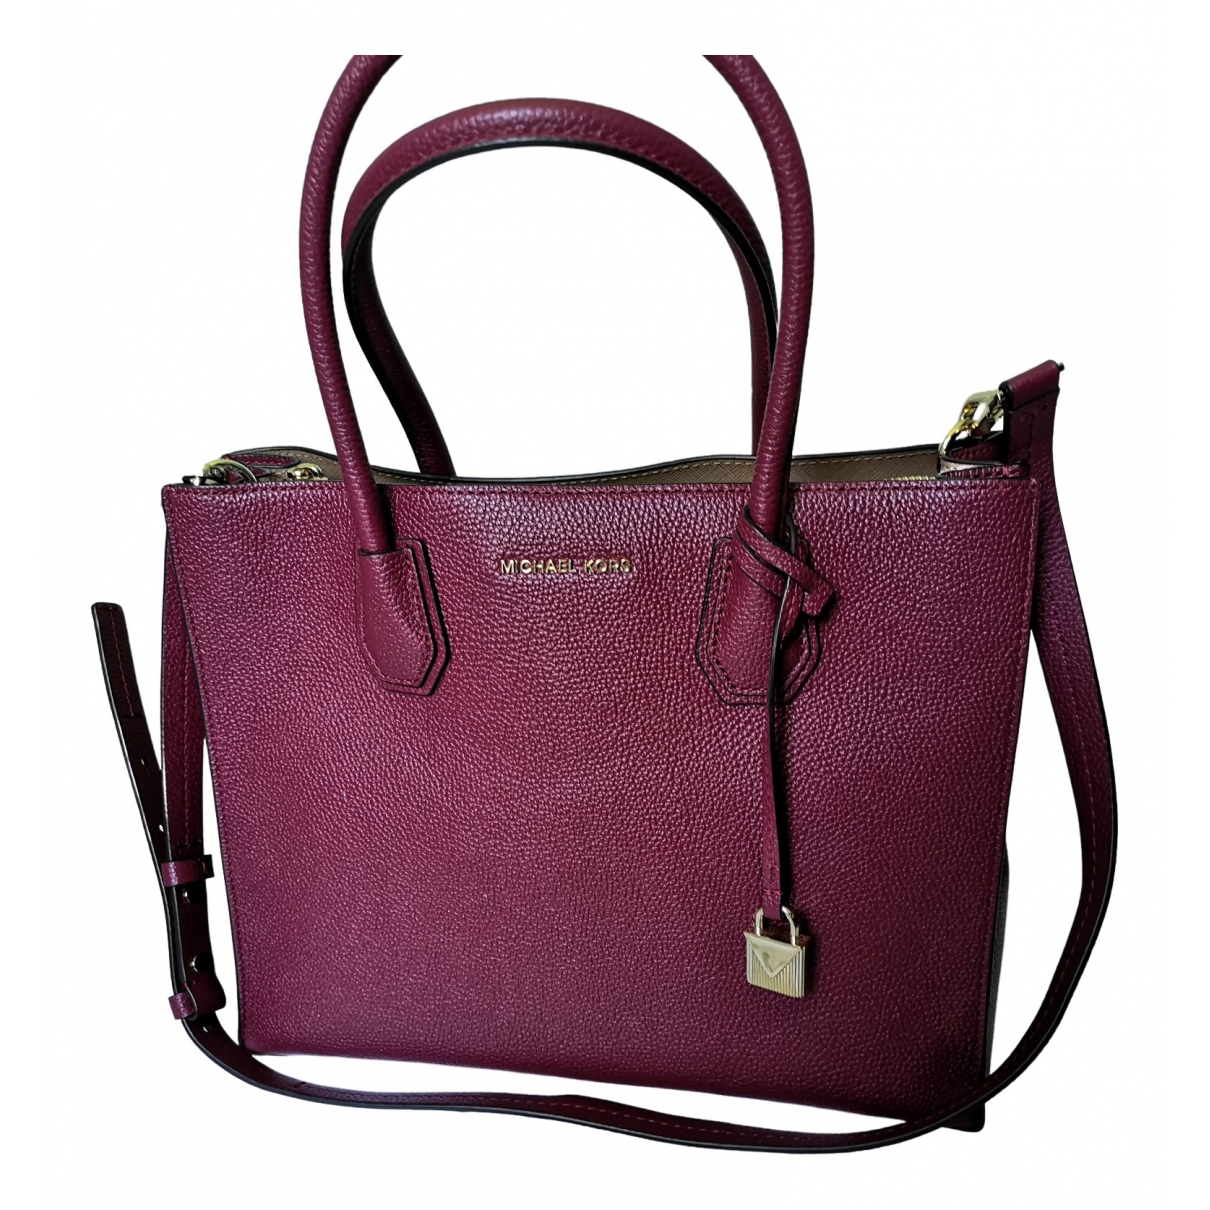 Michael Kors Mercer Leather handbag for Women \N